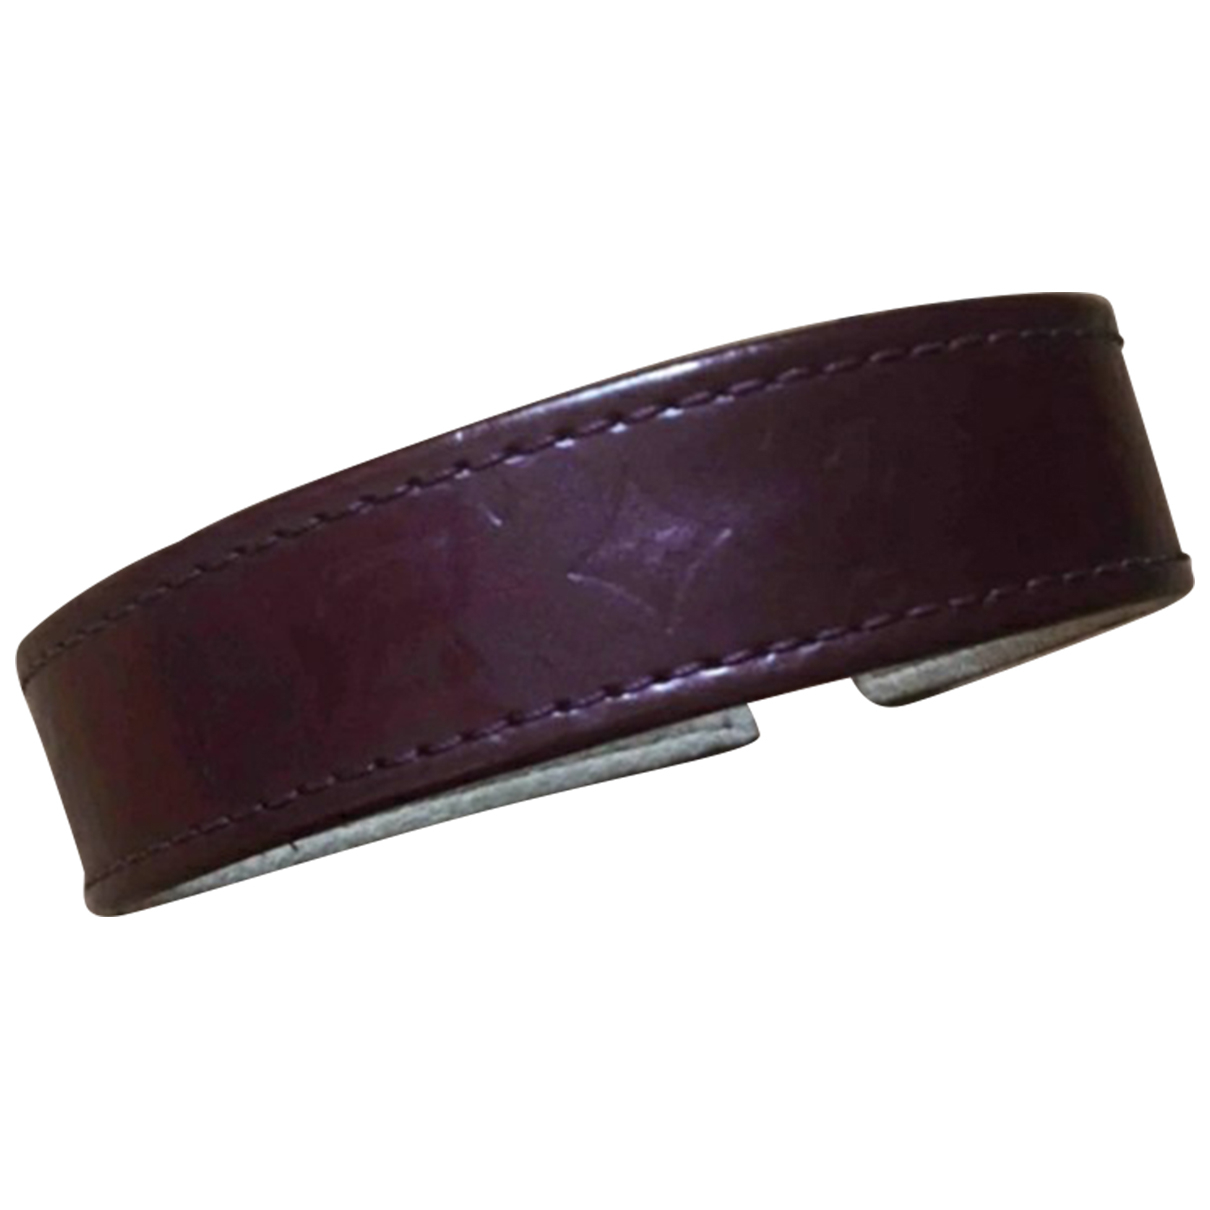 Louis Vuitton Monogram Armband in  Bordeauxrot Lackleder